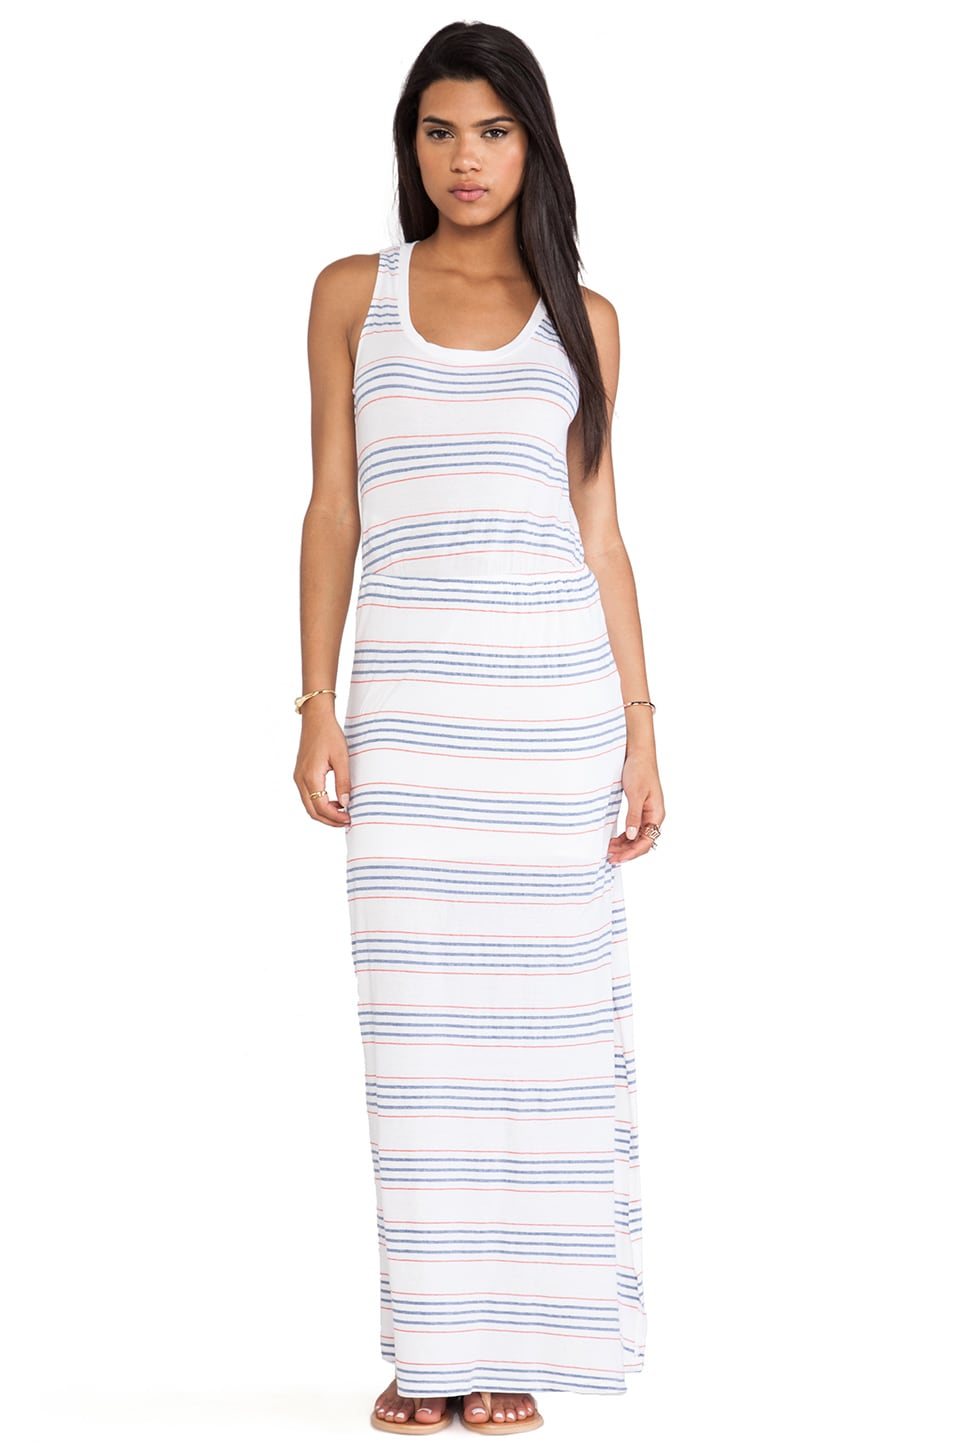 Splendid Striped Empire Waist Maxi Dress in White